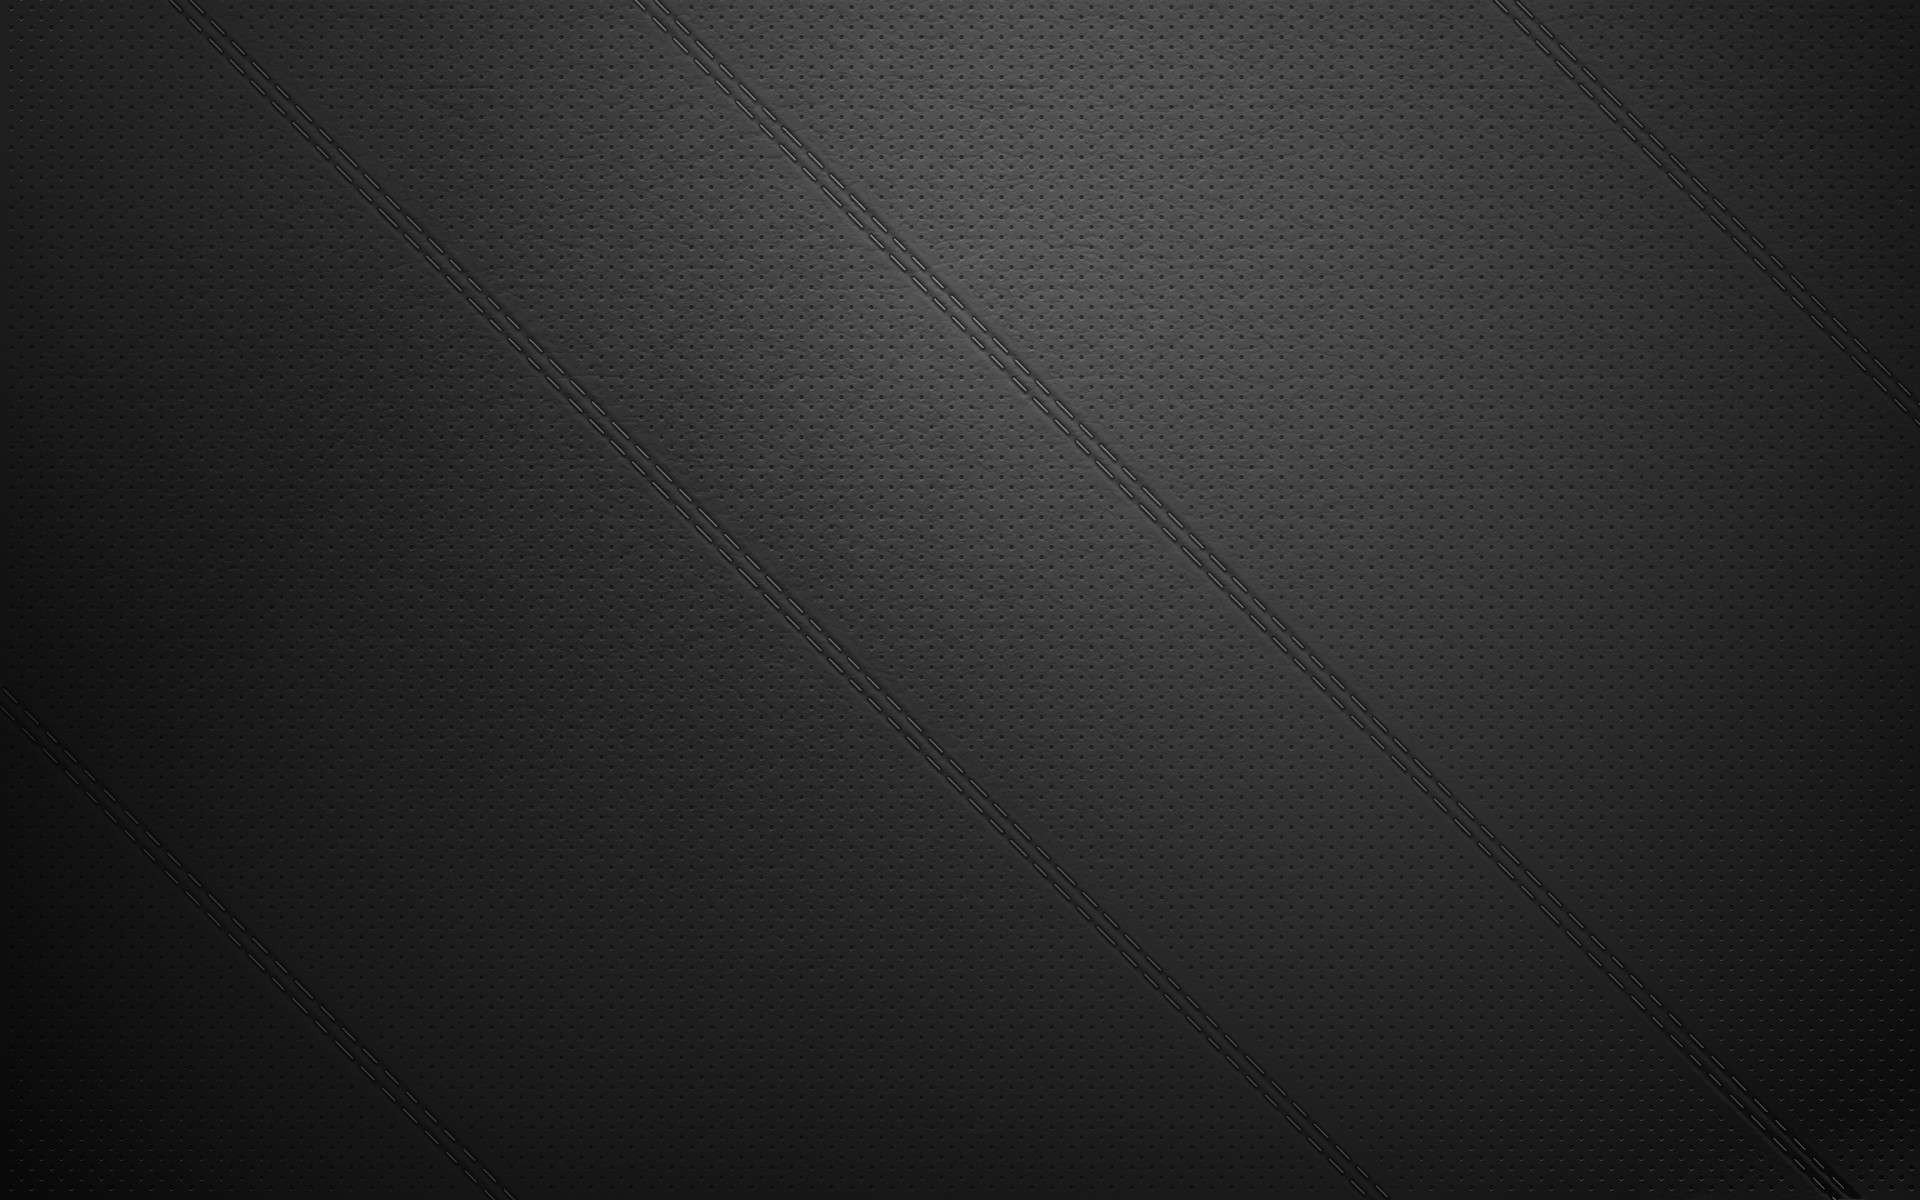 Plain Black Wallpaper 19 Free Hd Wallpaper